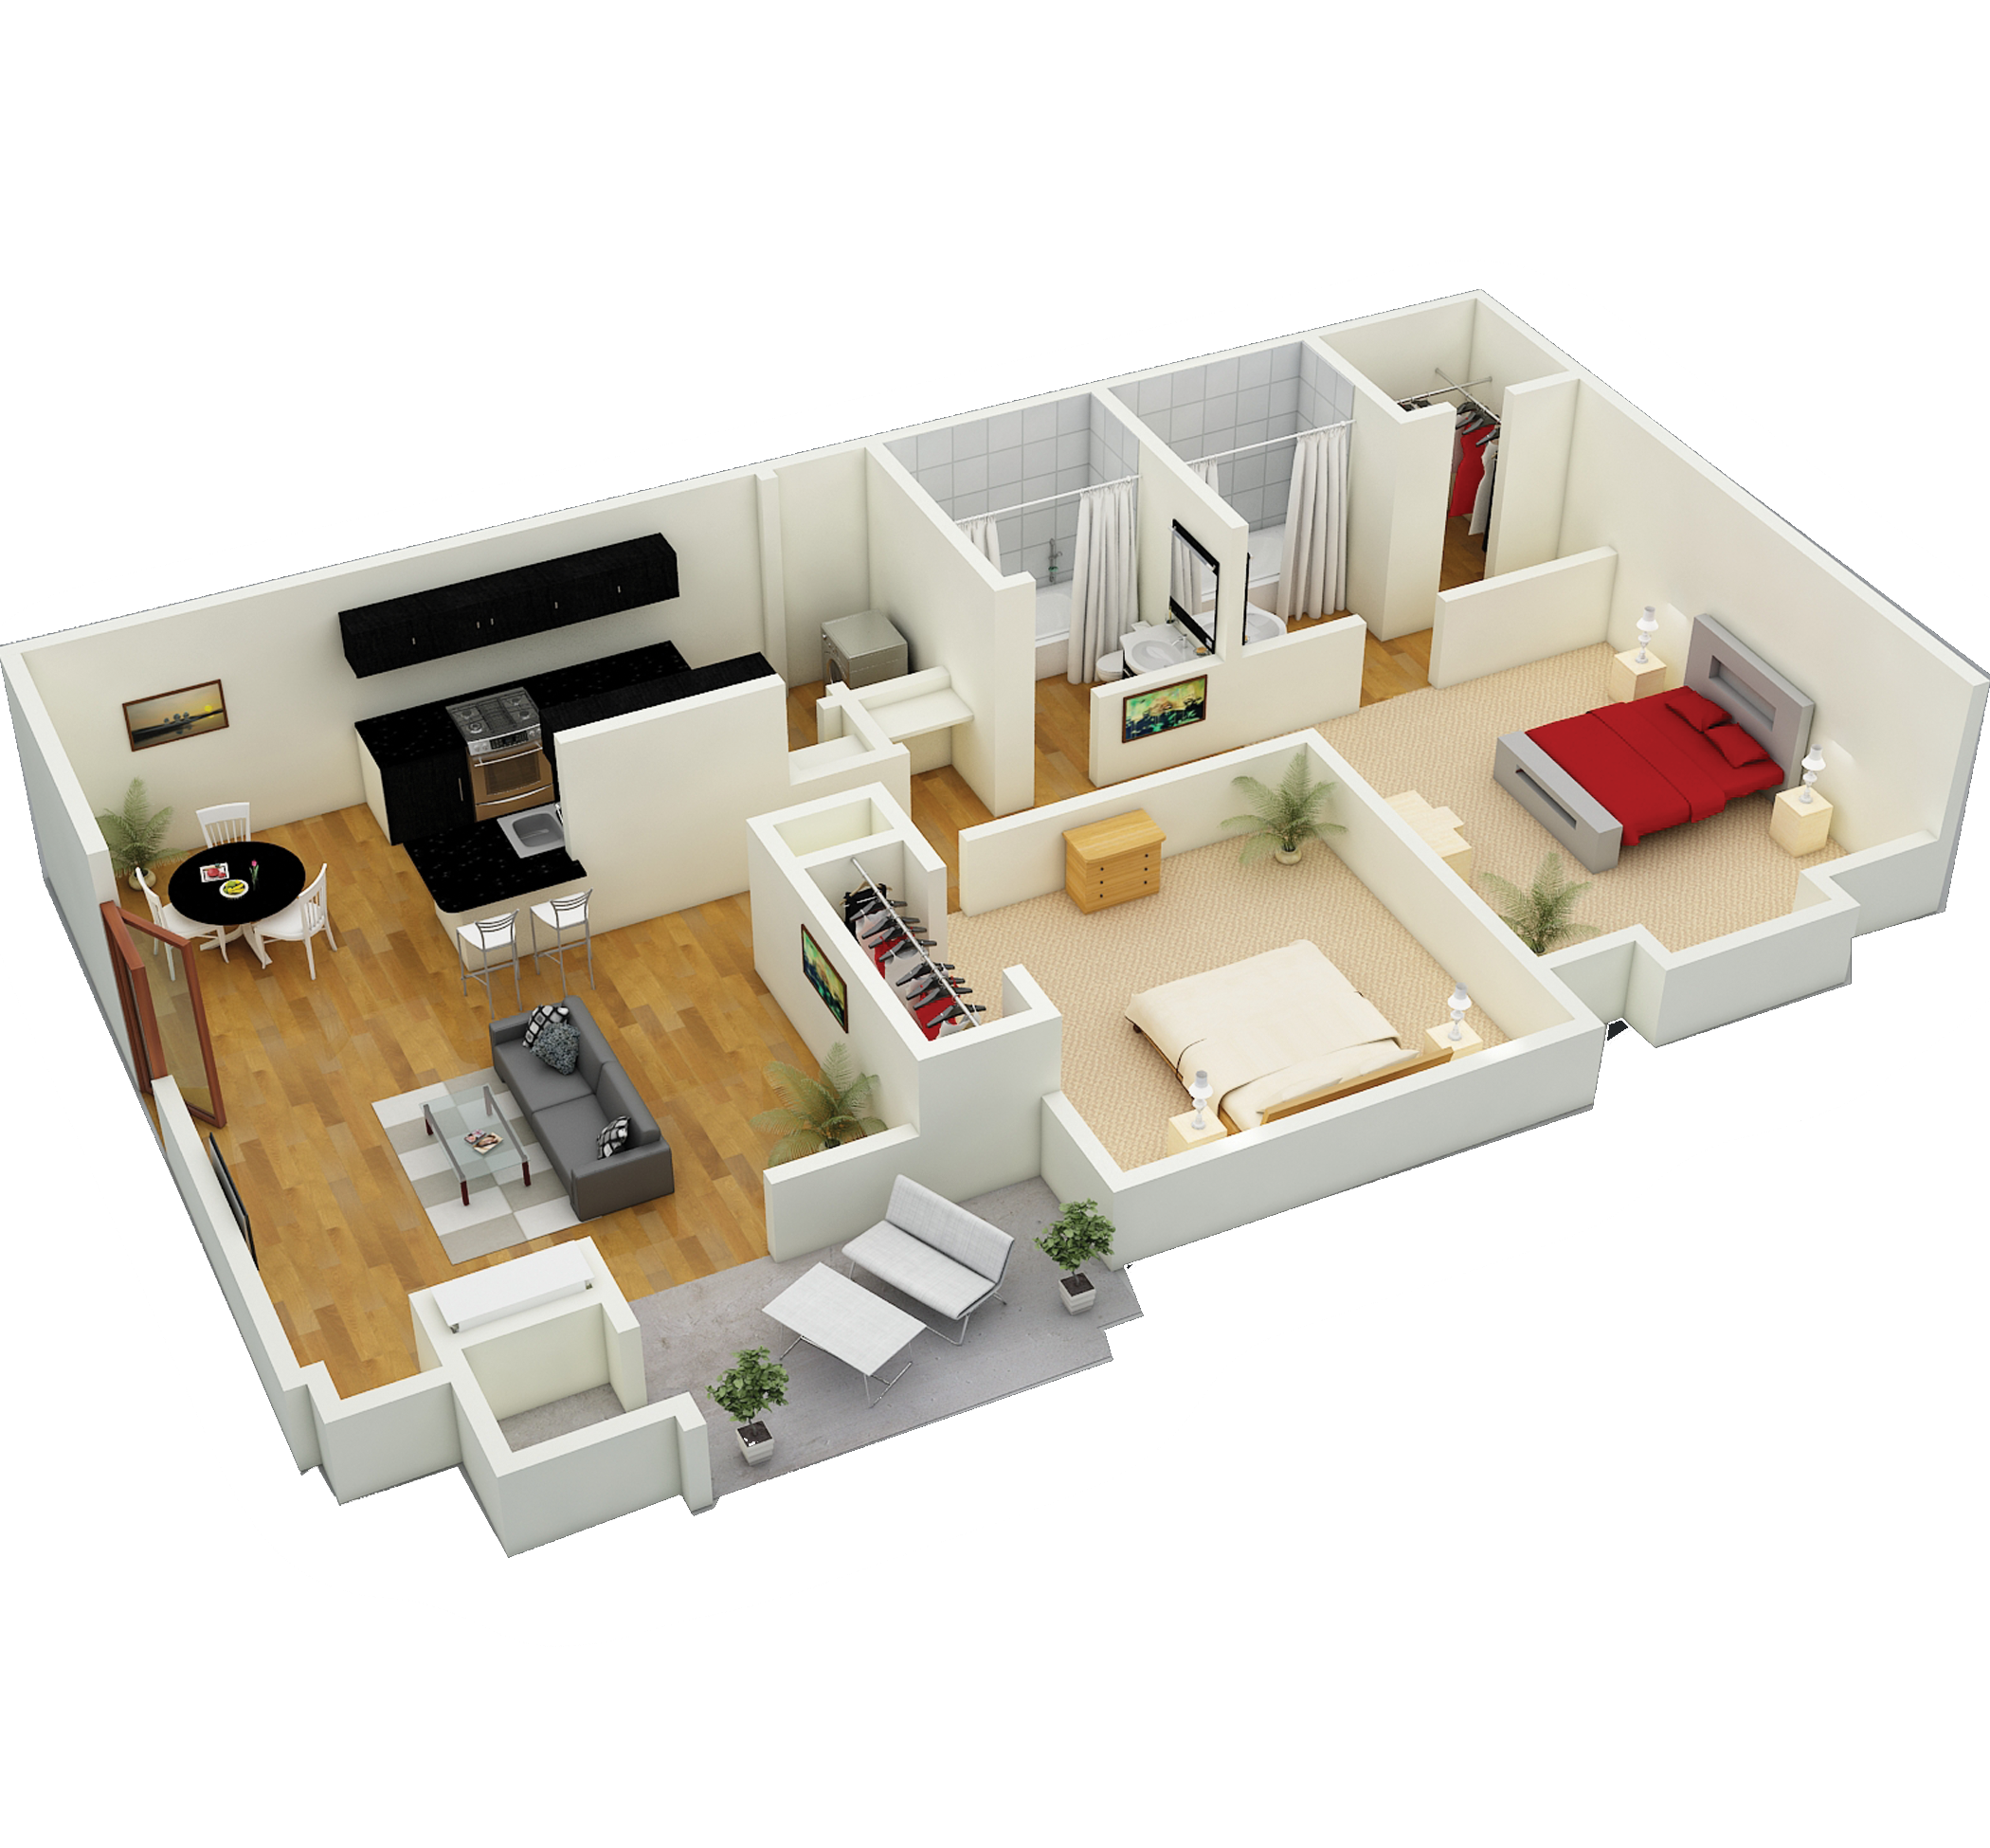 Sage - 2 bed / 2 bath / 1150 sq. ft.With a luxurious master bedroom arrangement including private bath and walk-in closet.